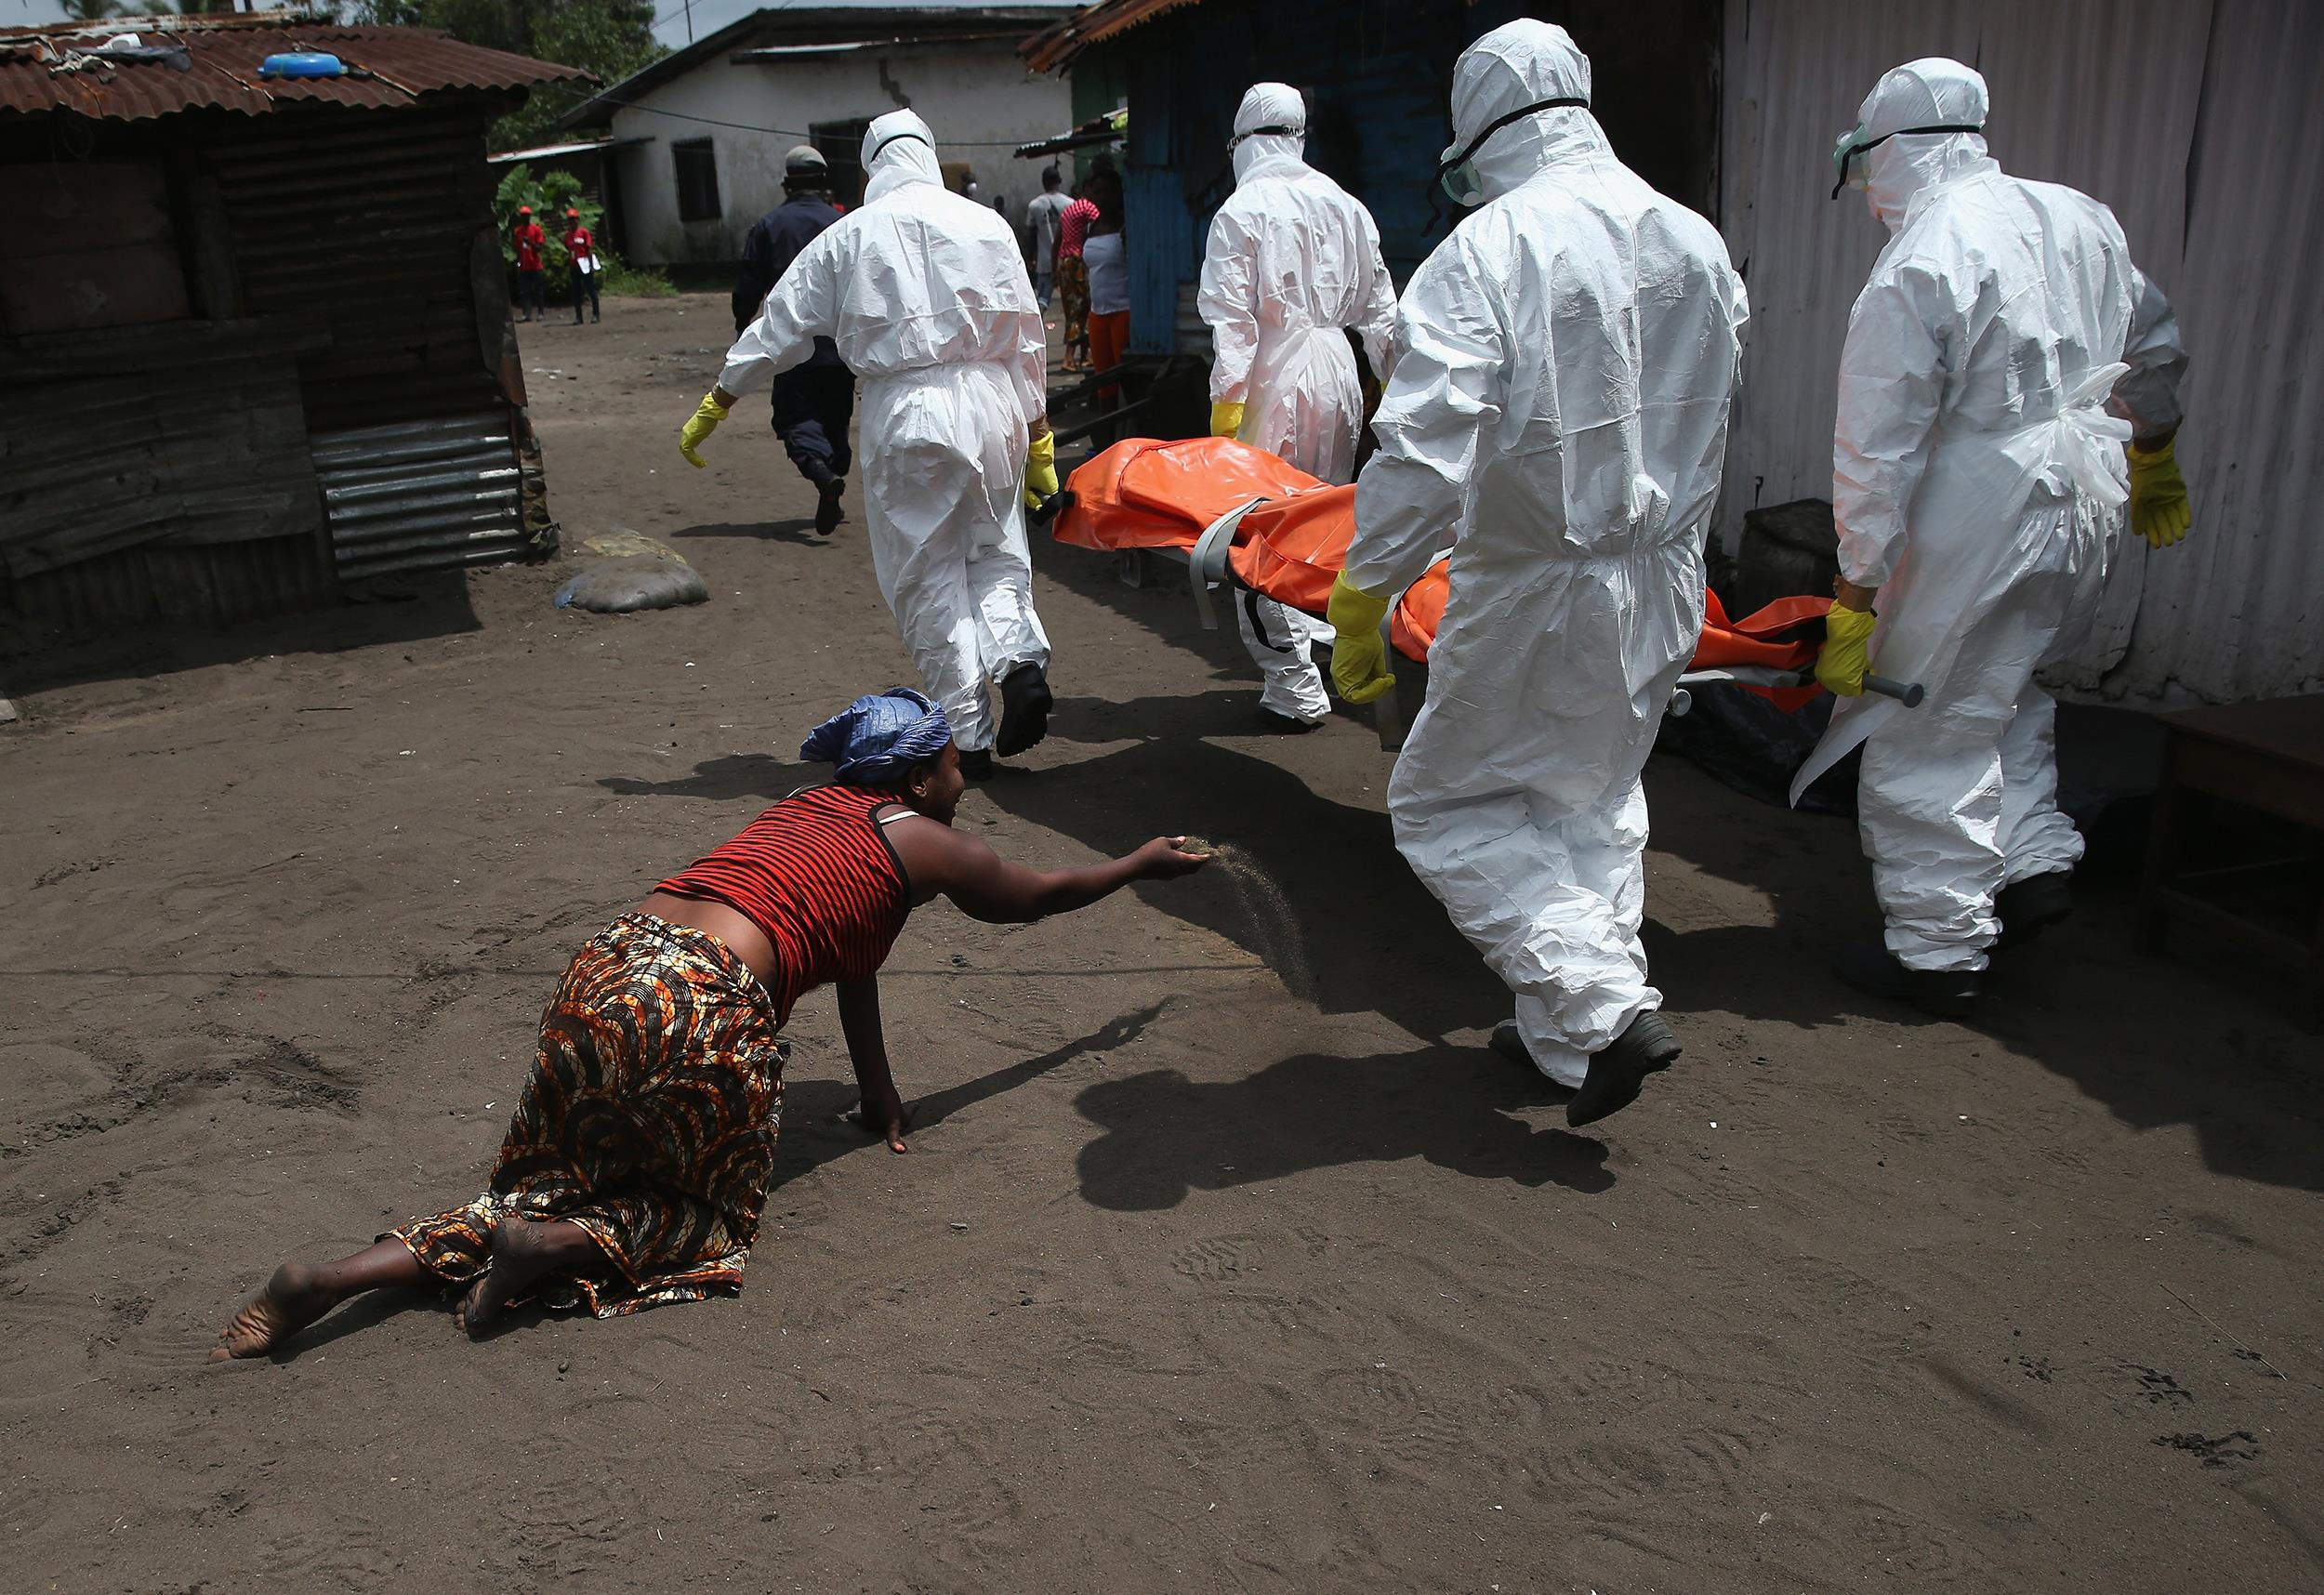 http://media4.s-nbcnews.com/i/newscms/2014_41/711201/141010-ebola-death-toll-1548_3d6ad58be94ec50e24fe731eef6a647c.jpg